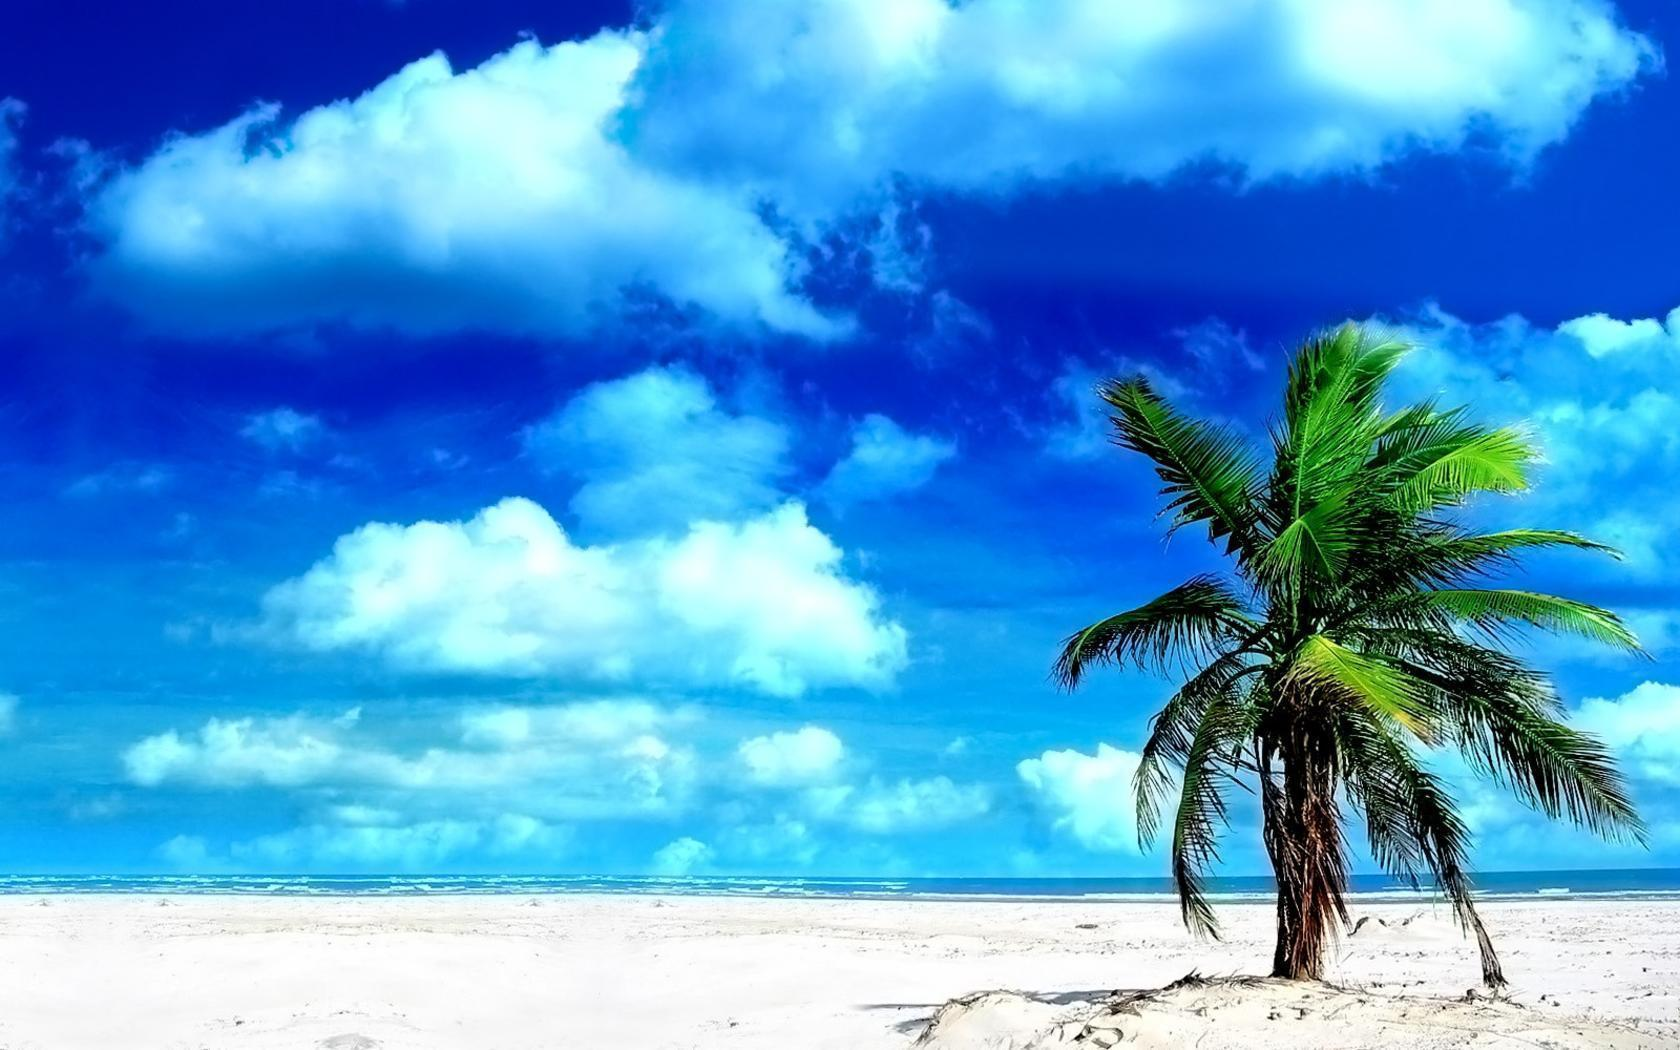 Beach Wallpapers Desktop Widescreen Hd Image 3 HD Wallpapers